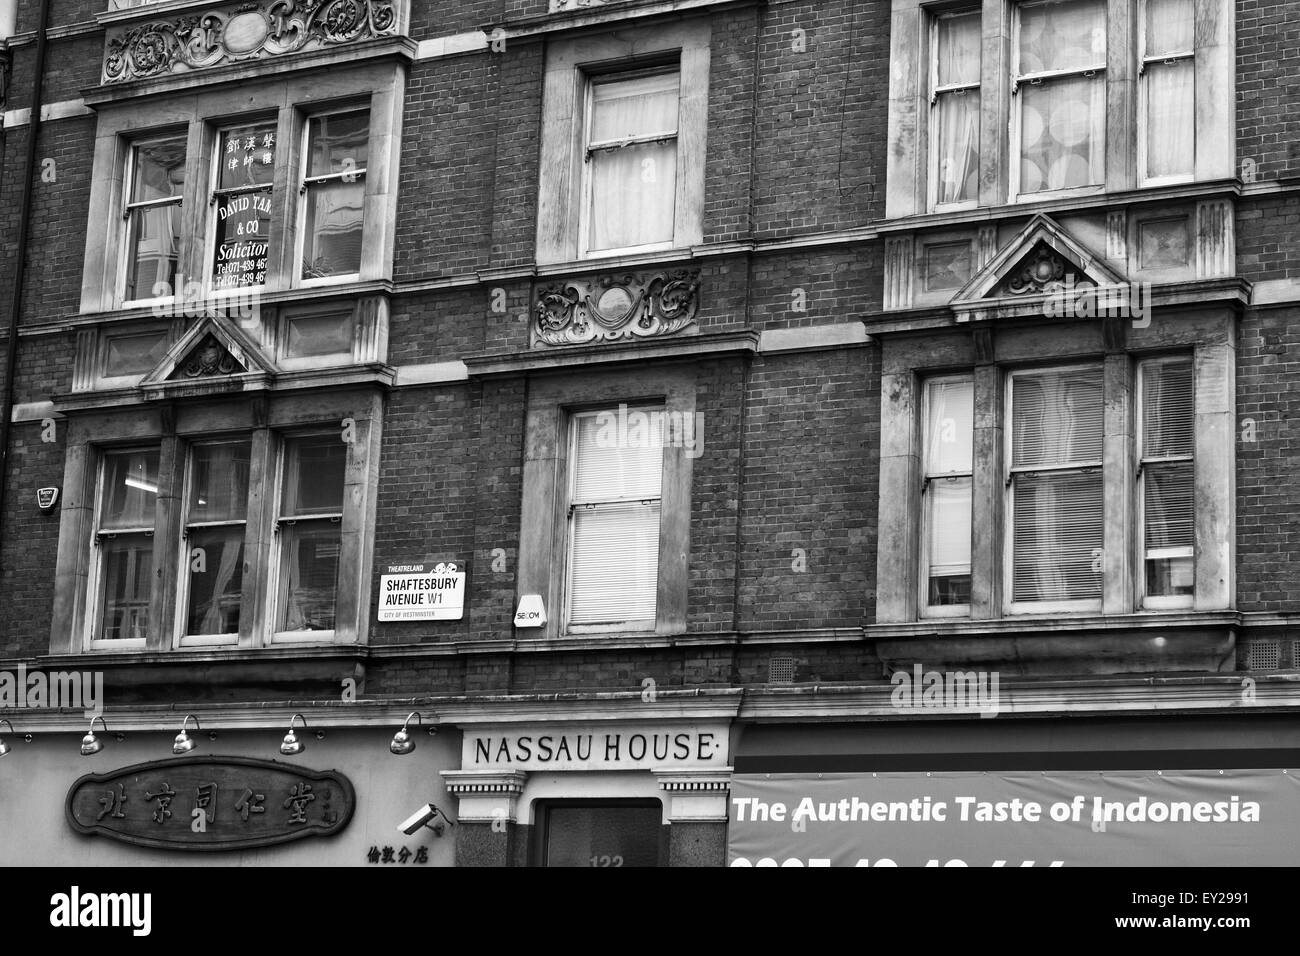 A view of buildings in Shaftesbury Avenue, London, England. Stock Photo